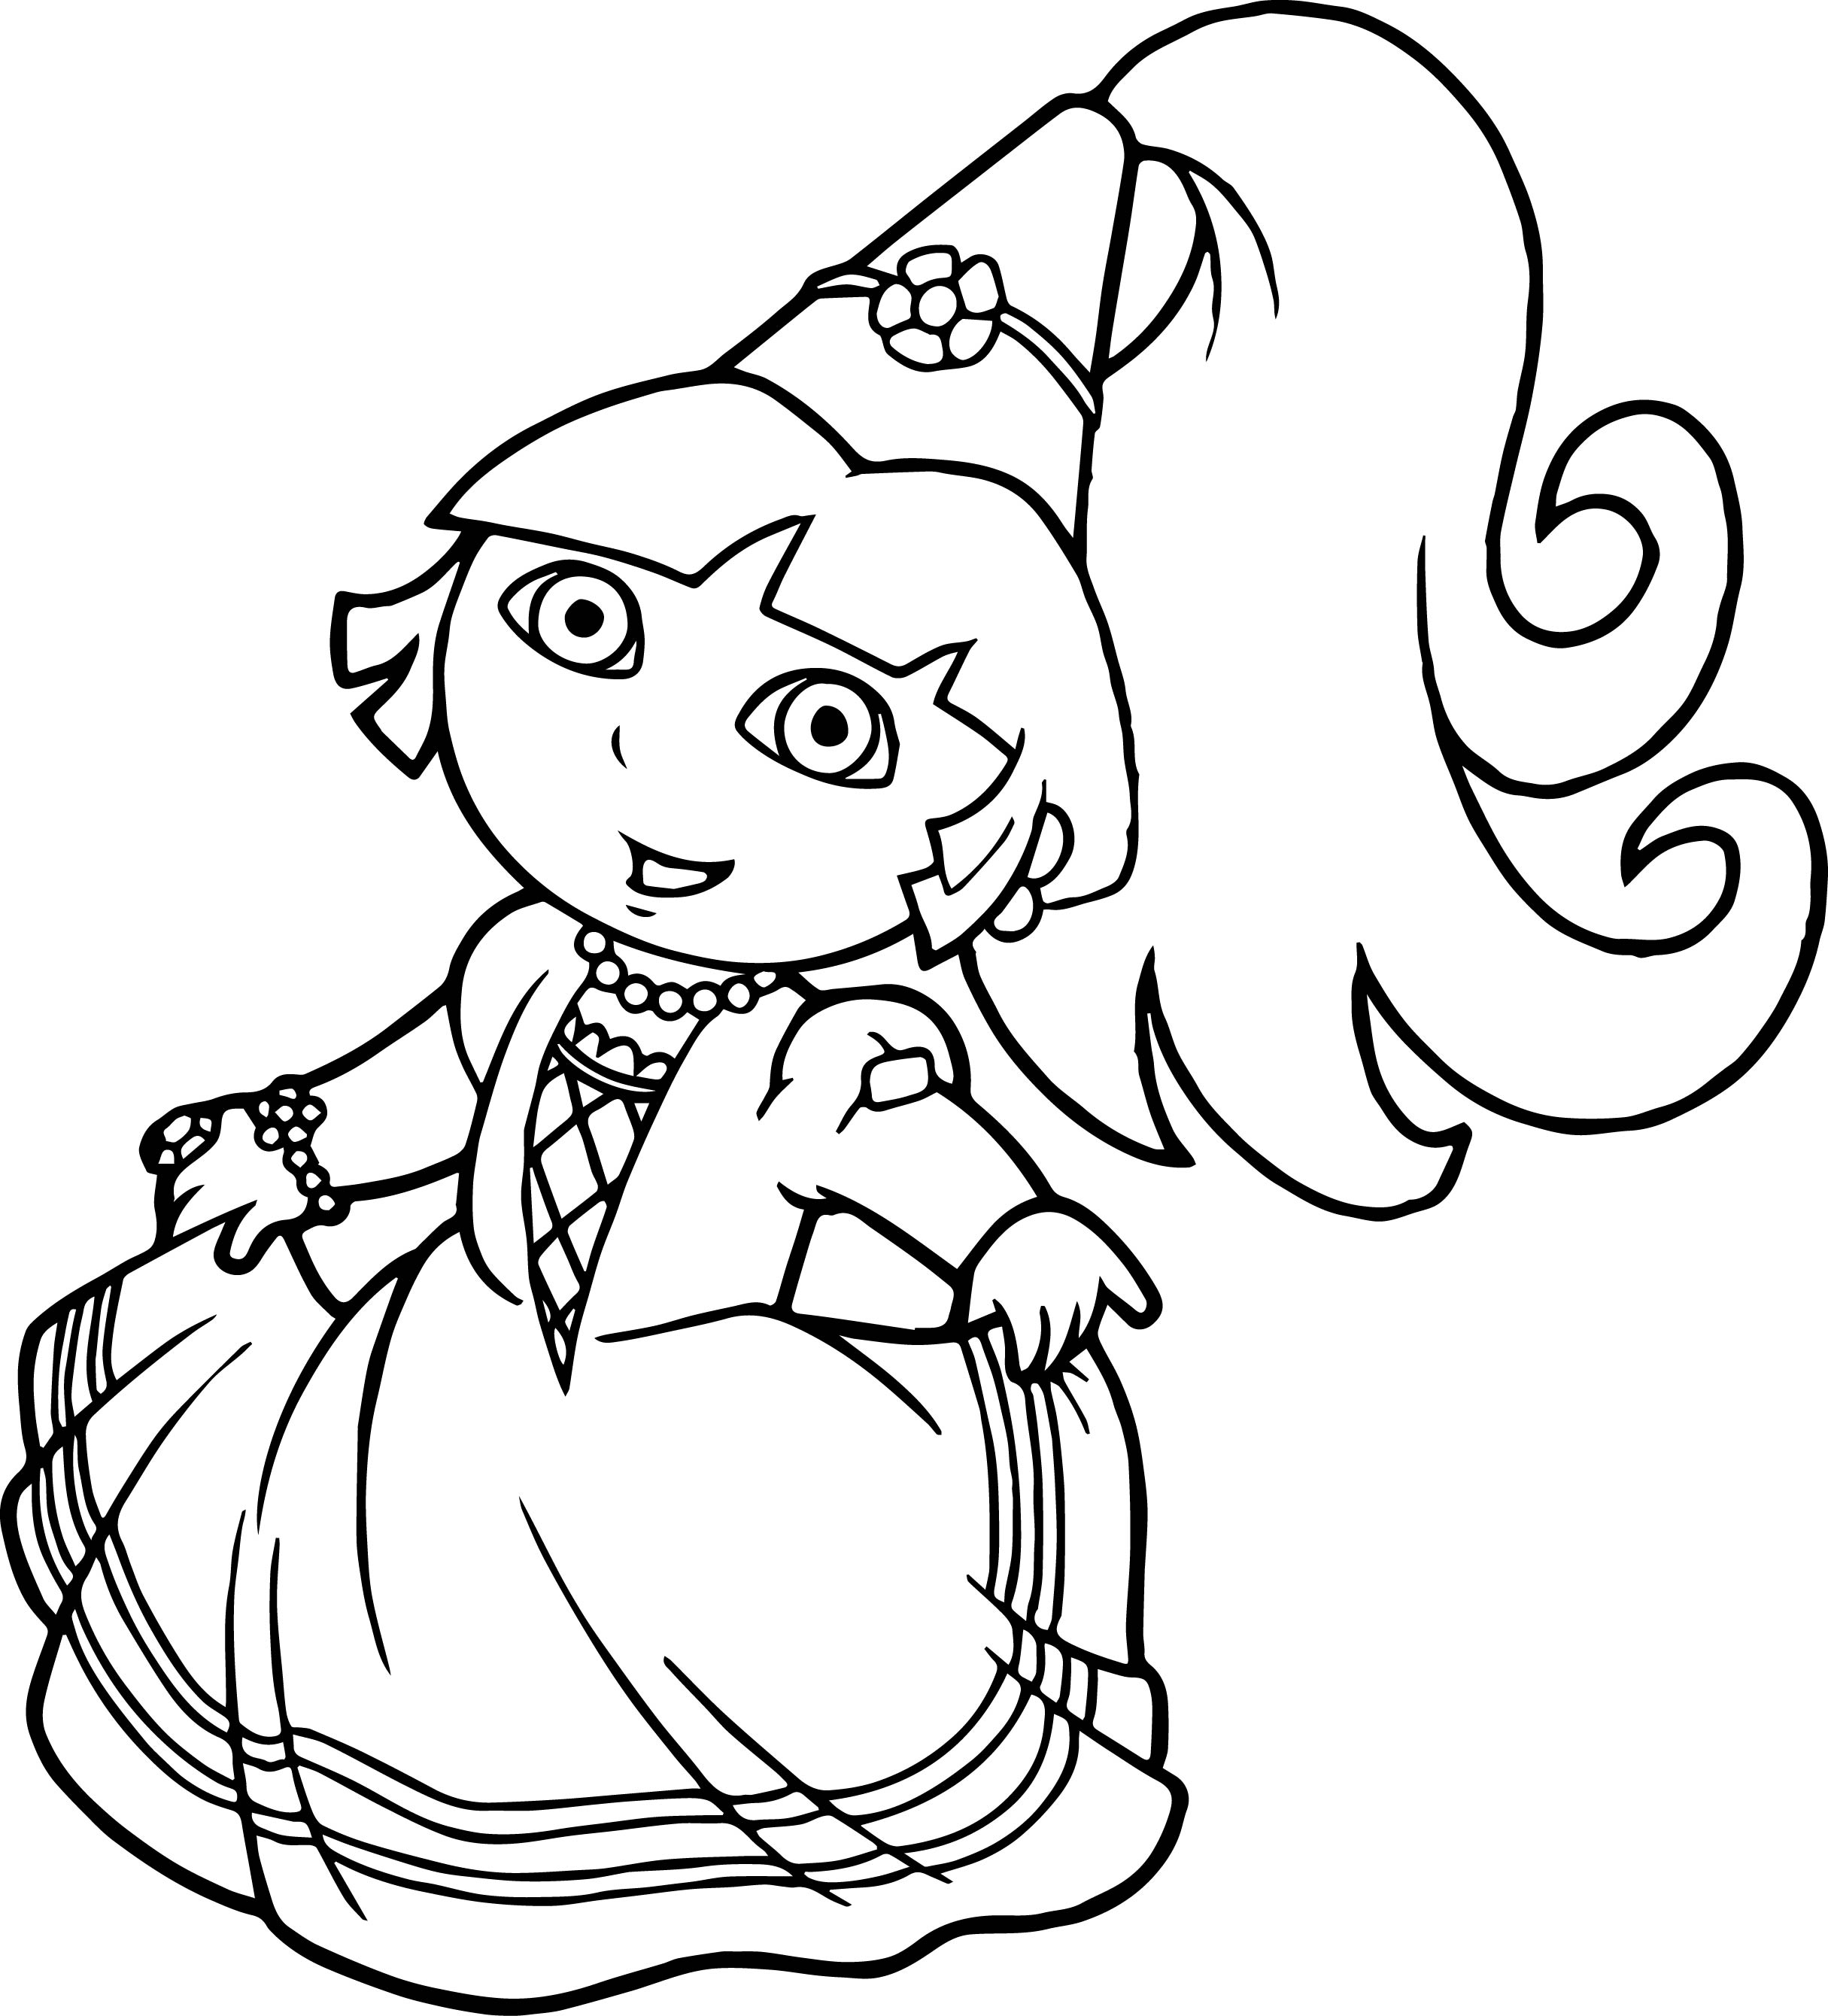 princess dora the explorer coloring page wecoloringpage